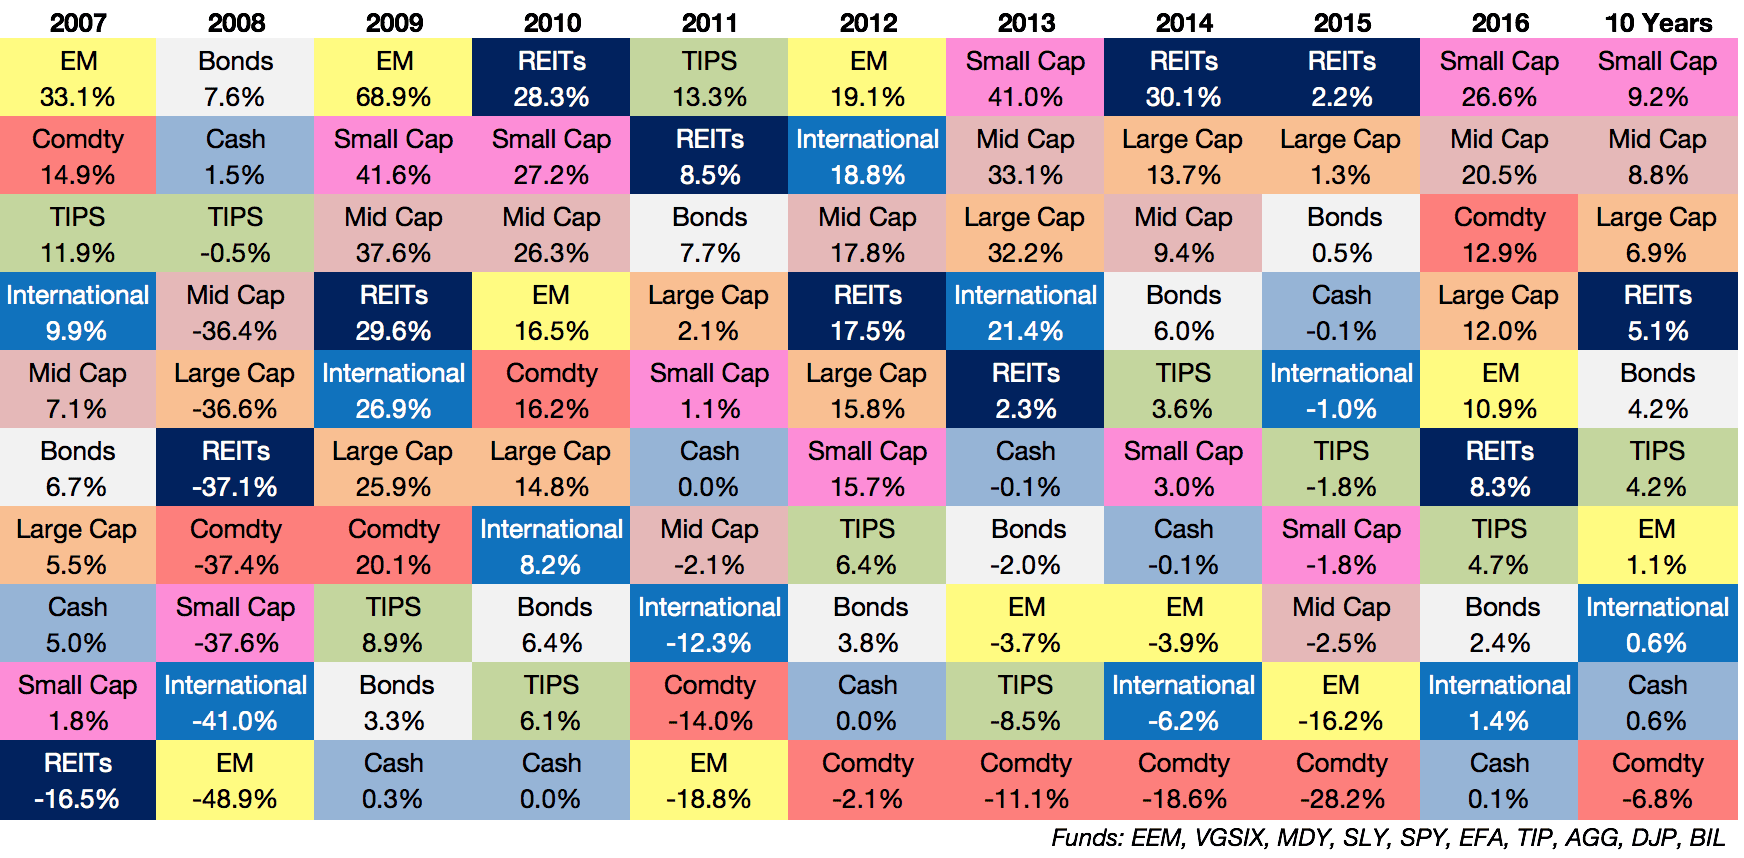 Asset Class Quilt Through 2016